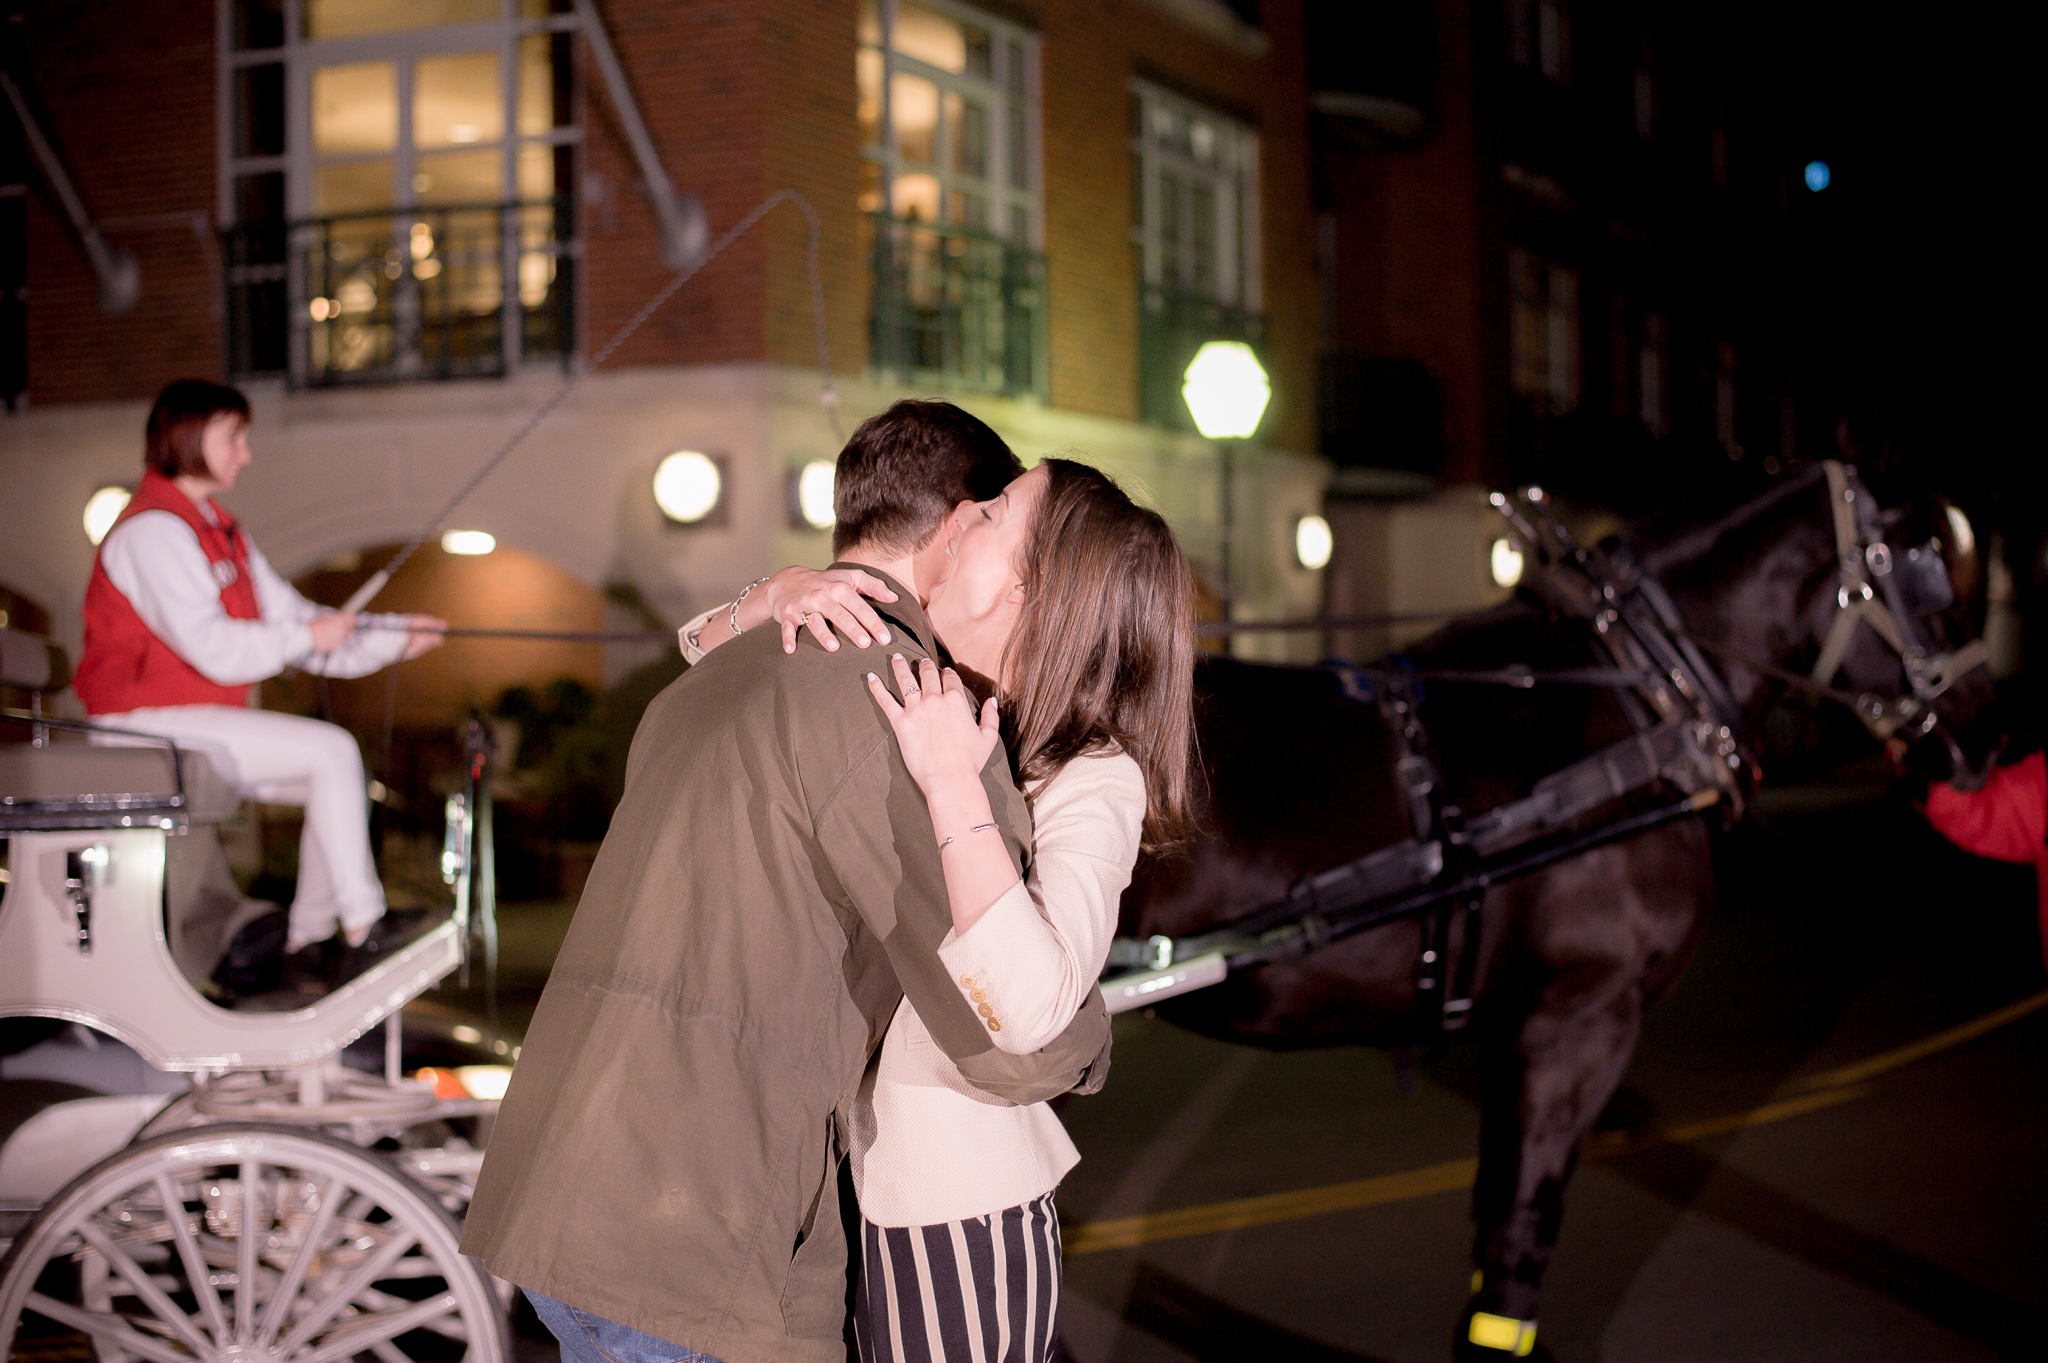 waterfront+park+charleston+proposal+photography-0201.JPG